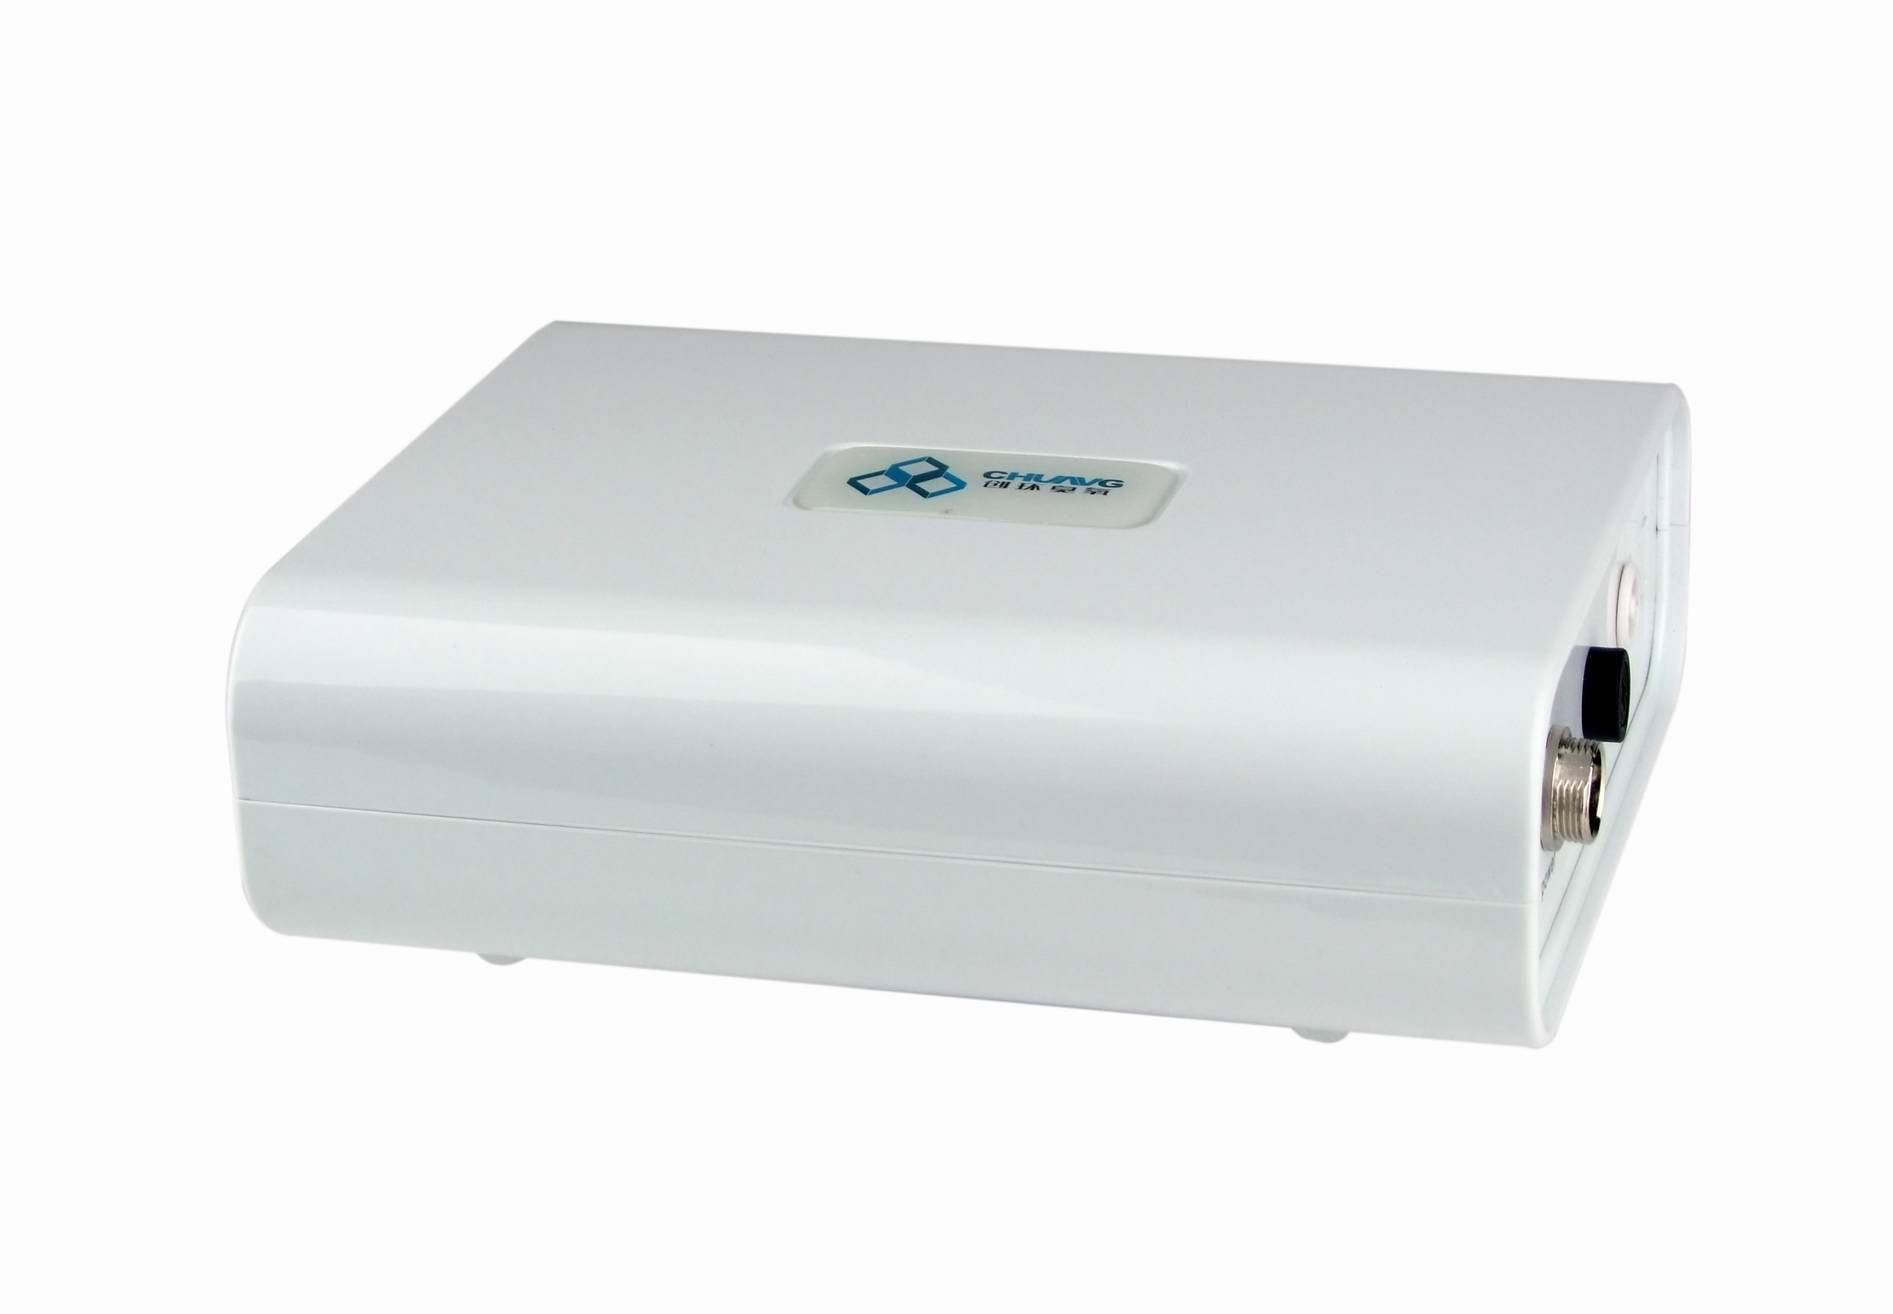 Mini ozone and anion/ion generator air purifier in home appliance